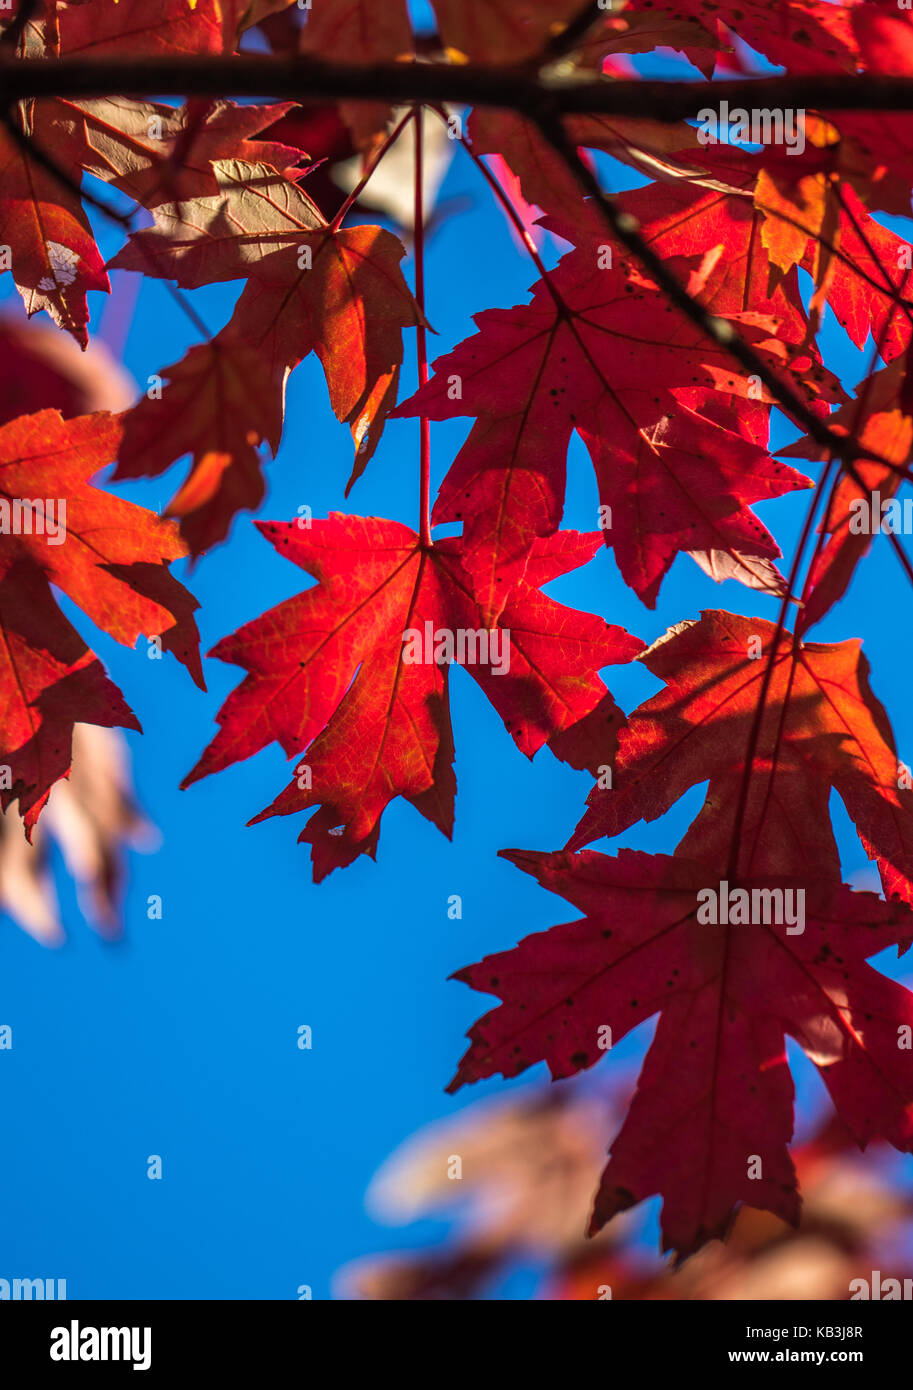 Vertical photo of red fall maple leaves against a blue sky - Stock Image